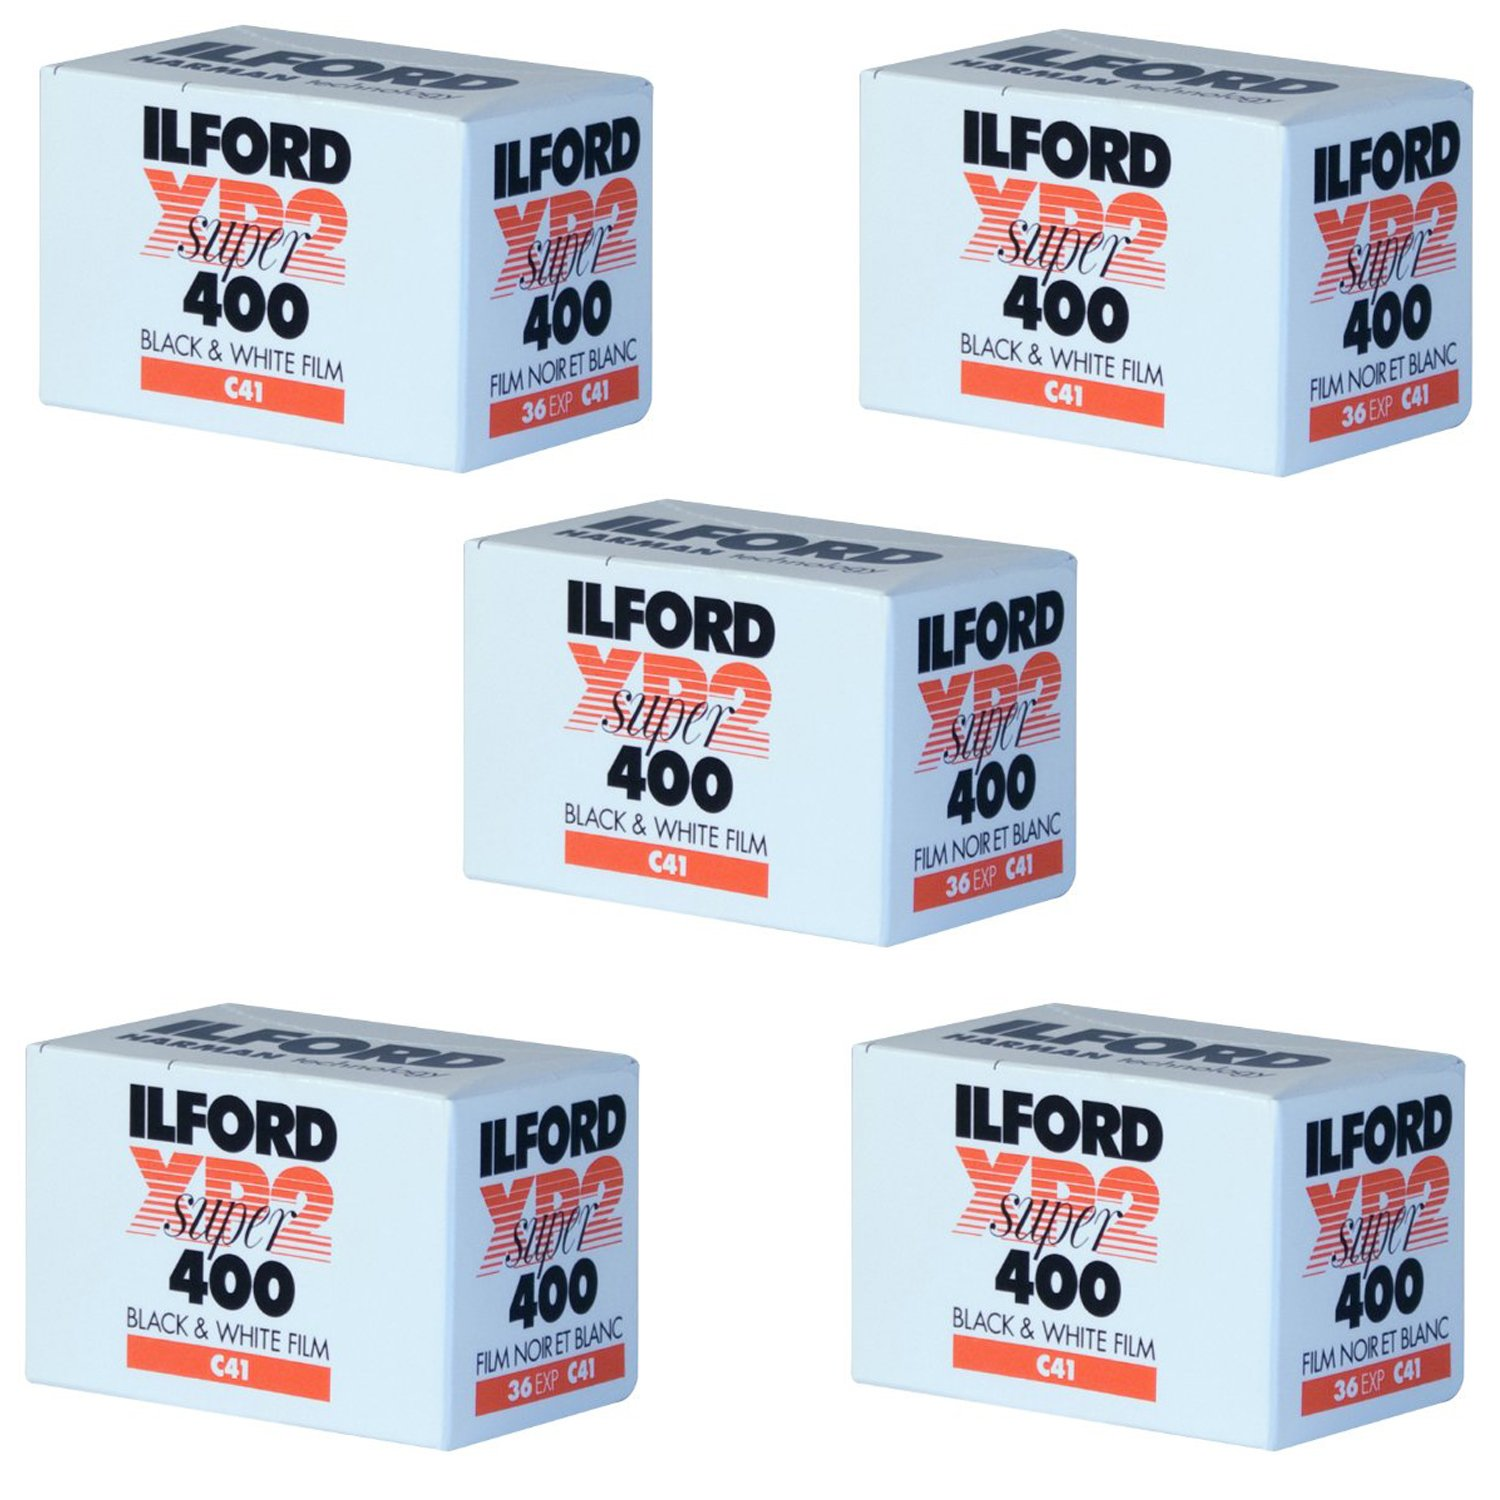 Pack of 5 Ilford XP-2 Super 400 135-36 Black & White Film by Ritz Camera